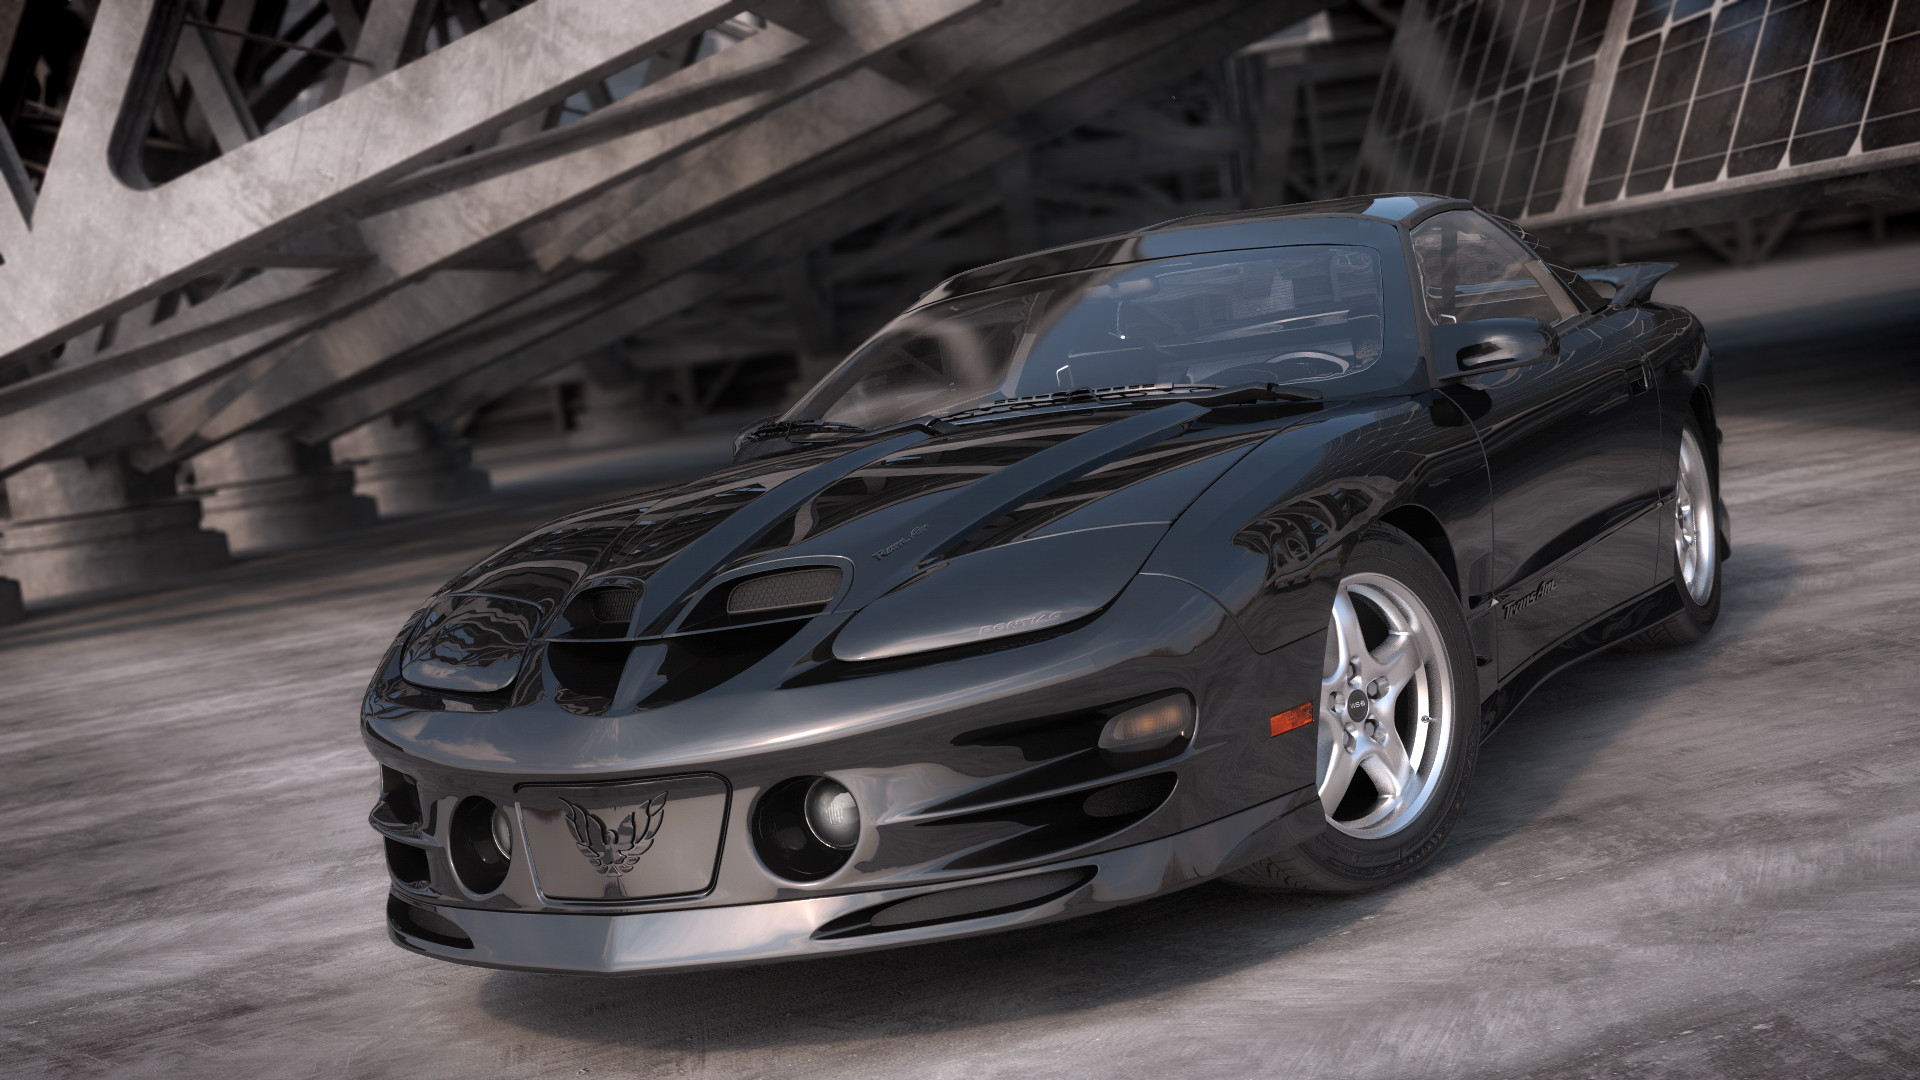 Ws6 Trans Am Wallpaper 39 Images